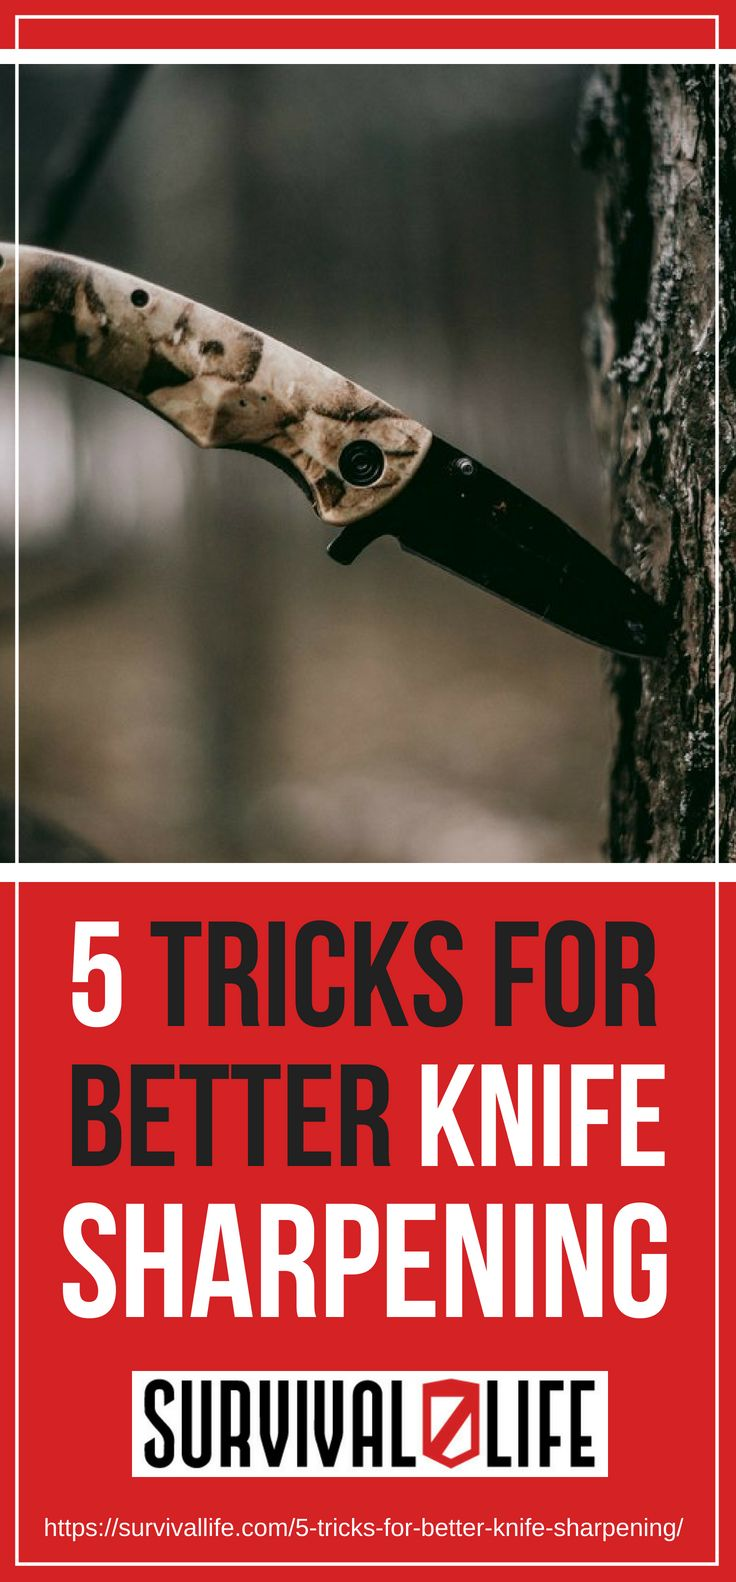 Tricks For Better Knife Sharpening | https://survivallife.com/tricks-for-better-knife-sharpening/